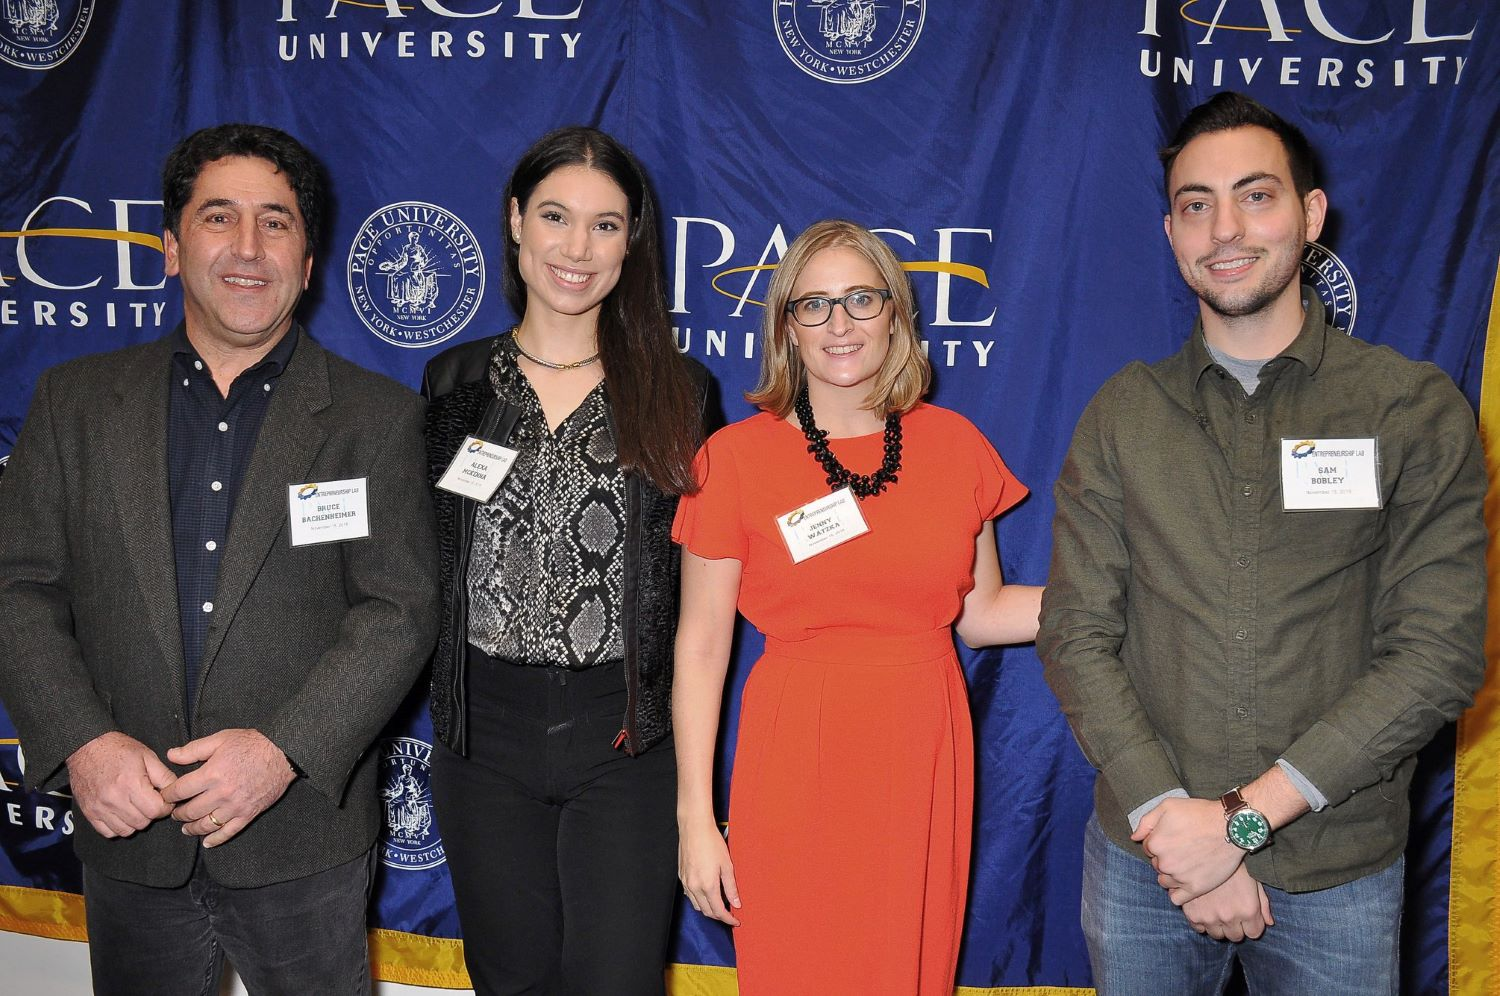 Ocrolus CEO at an Entrepreneurship event at Pace University